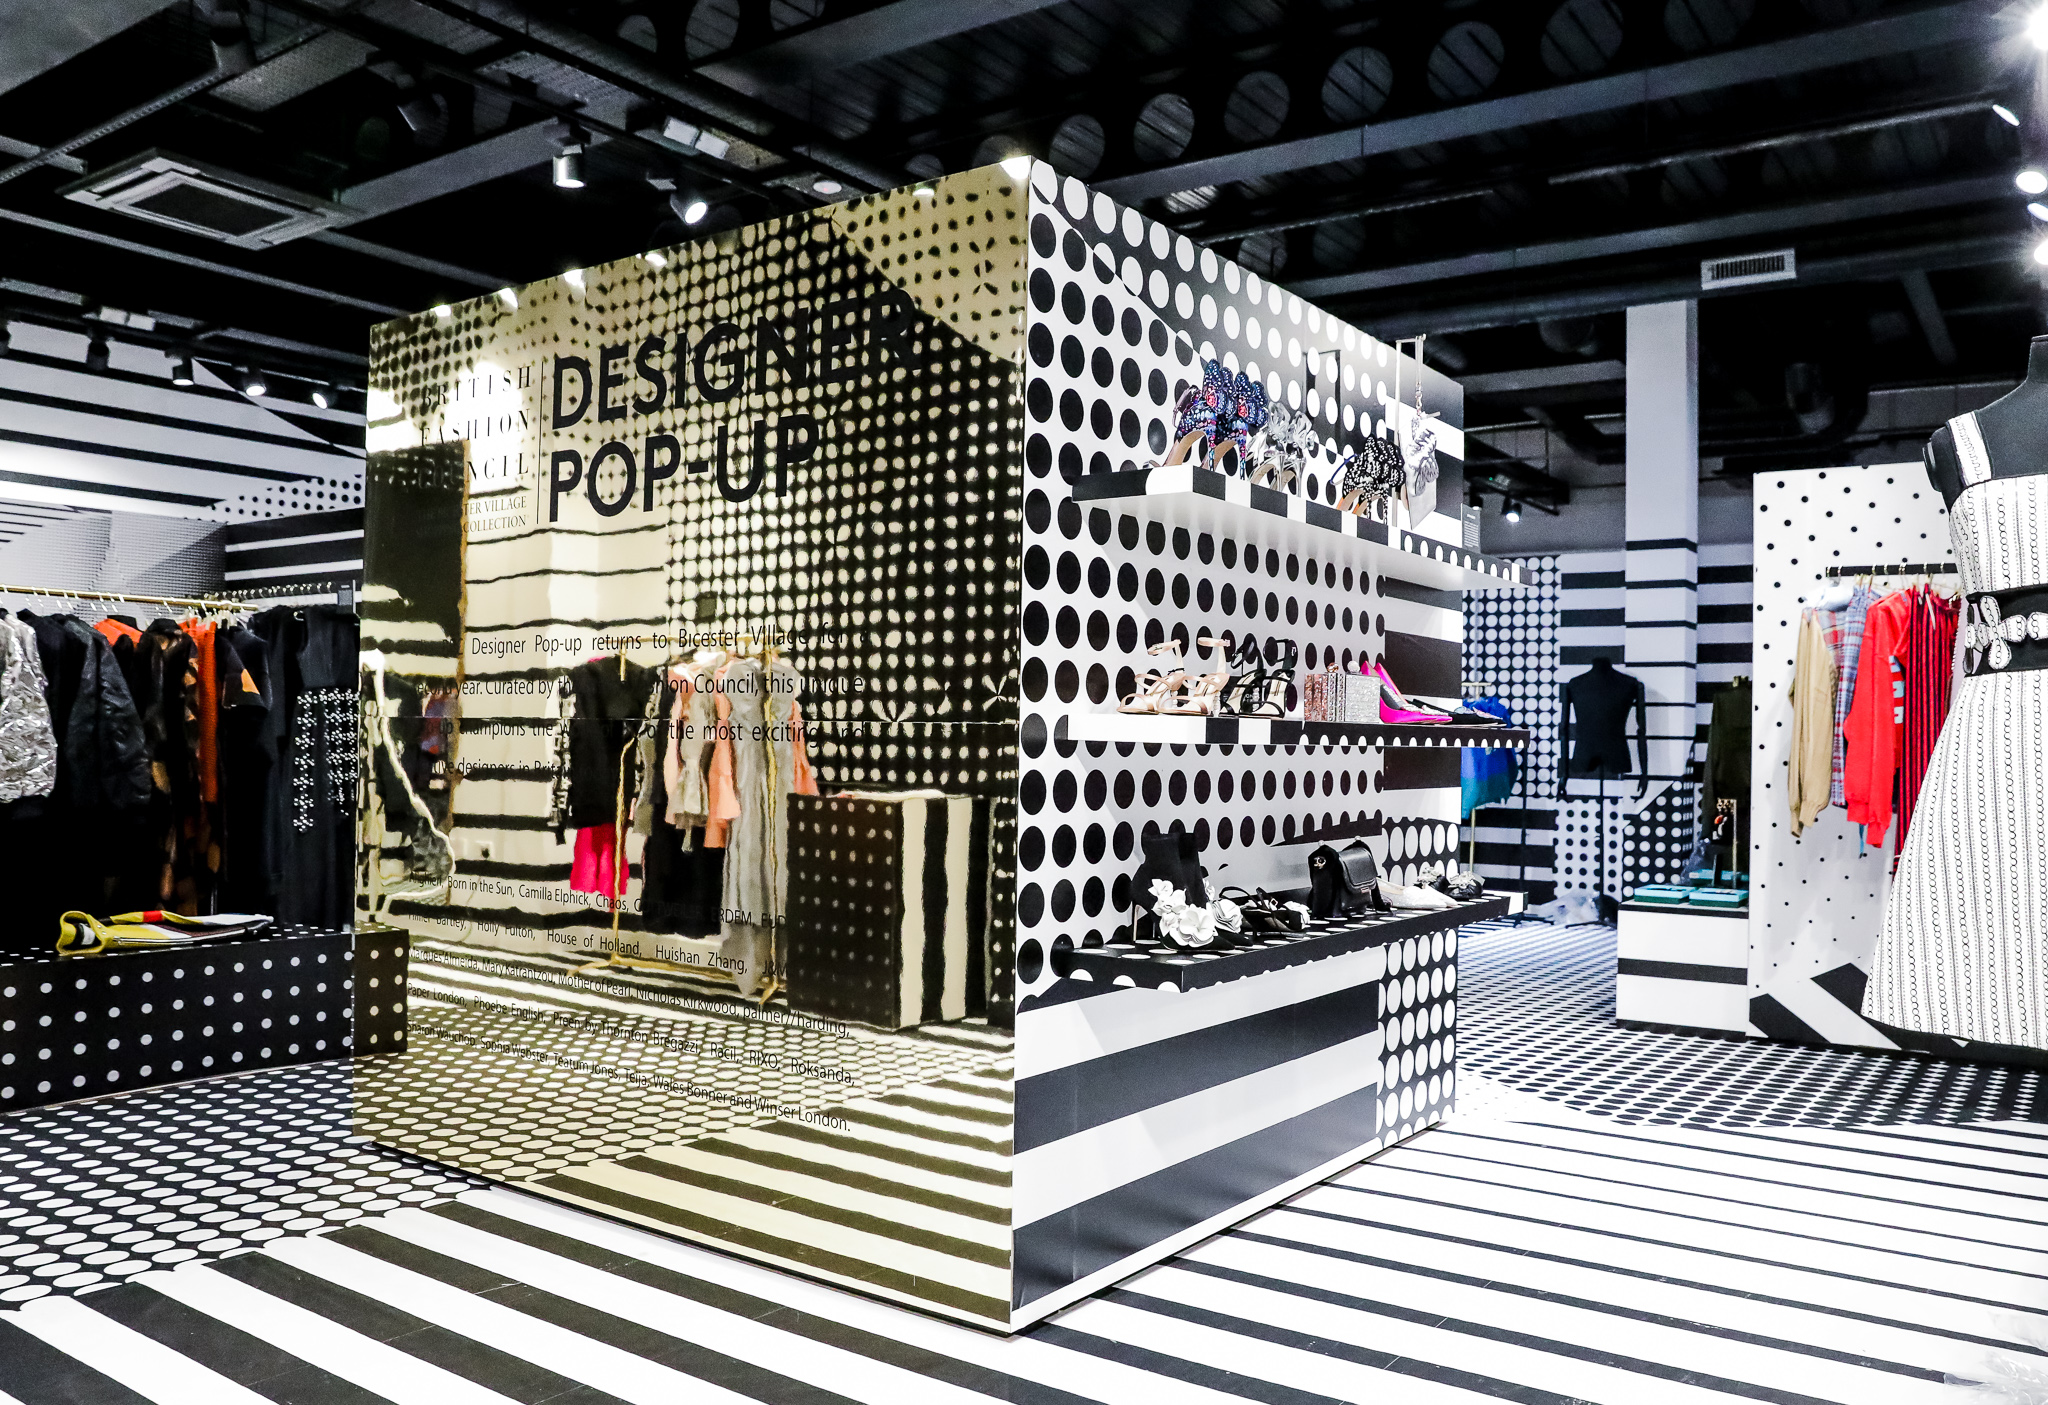 The BFC pop-up space at Bicester Village in Oxfordshire.